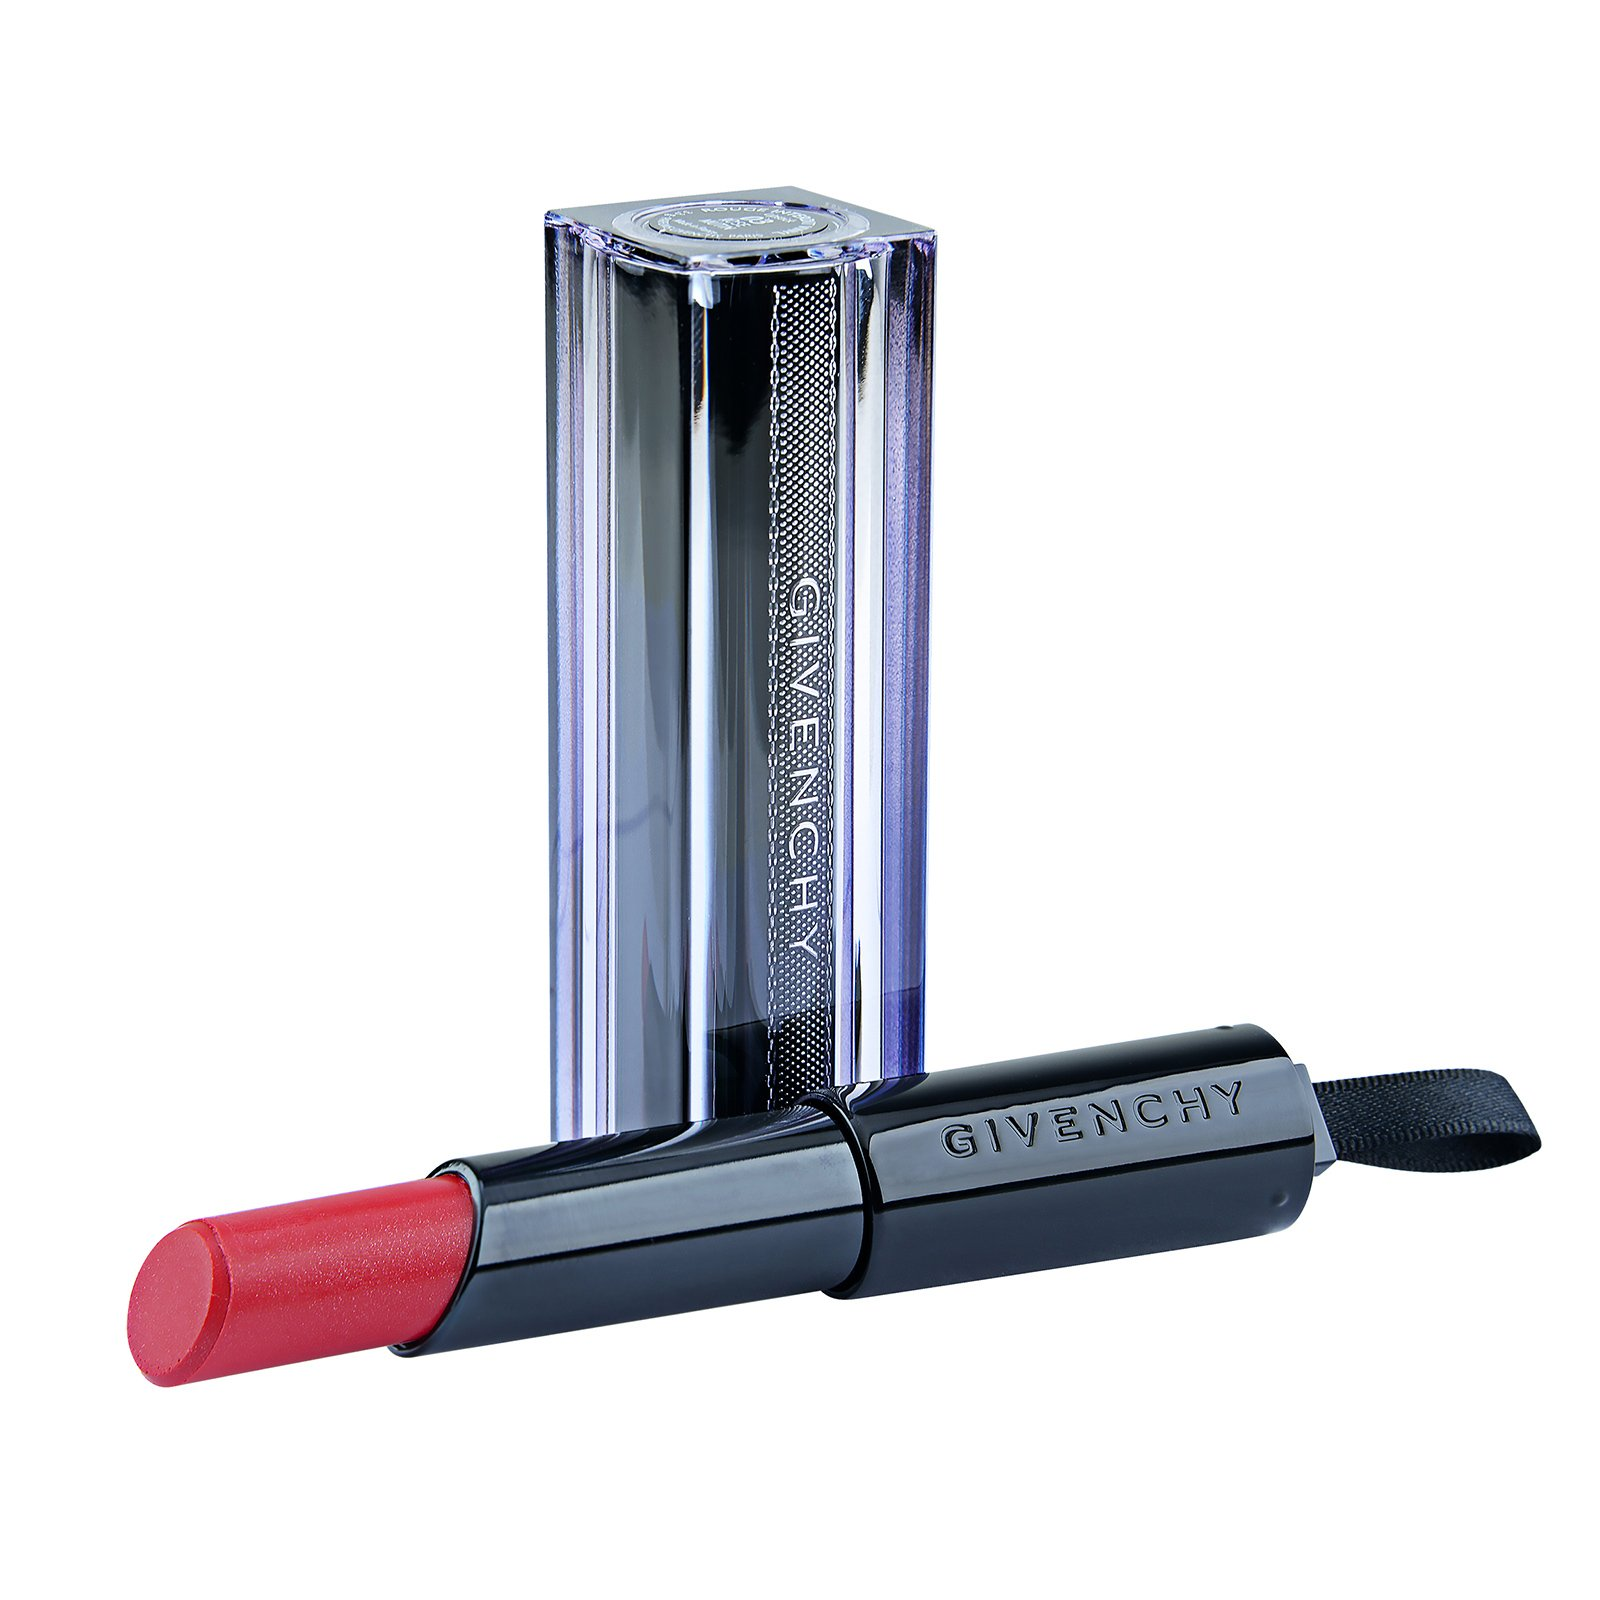 Givenchy  Rouge Interdit Vinyl Extreme Shine Lipstick Illicit Color 10 Rouge Provocant, 0.11oz, 3.3g